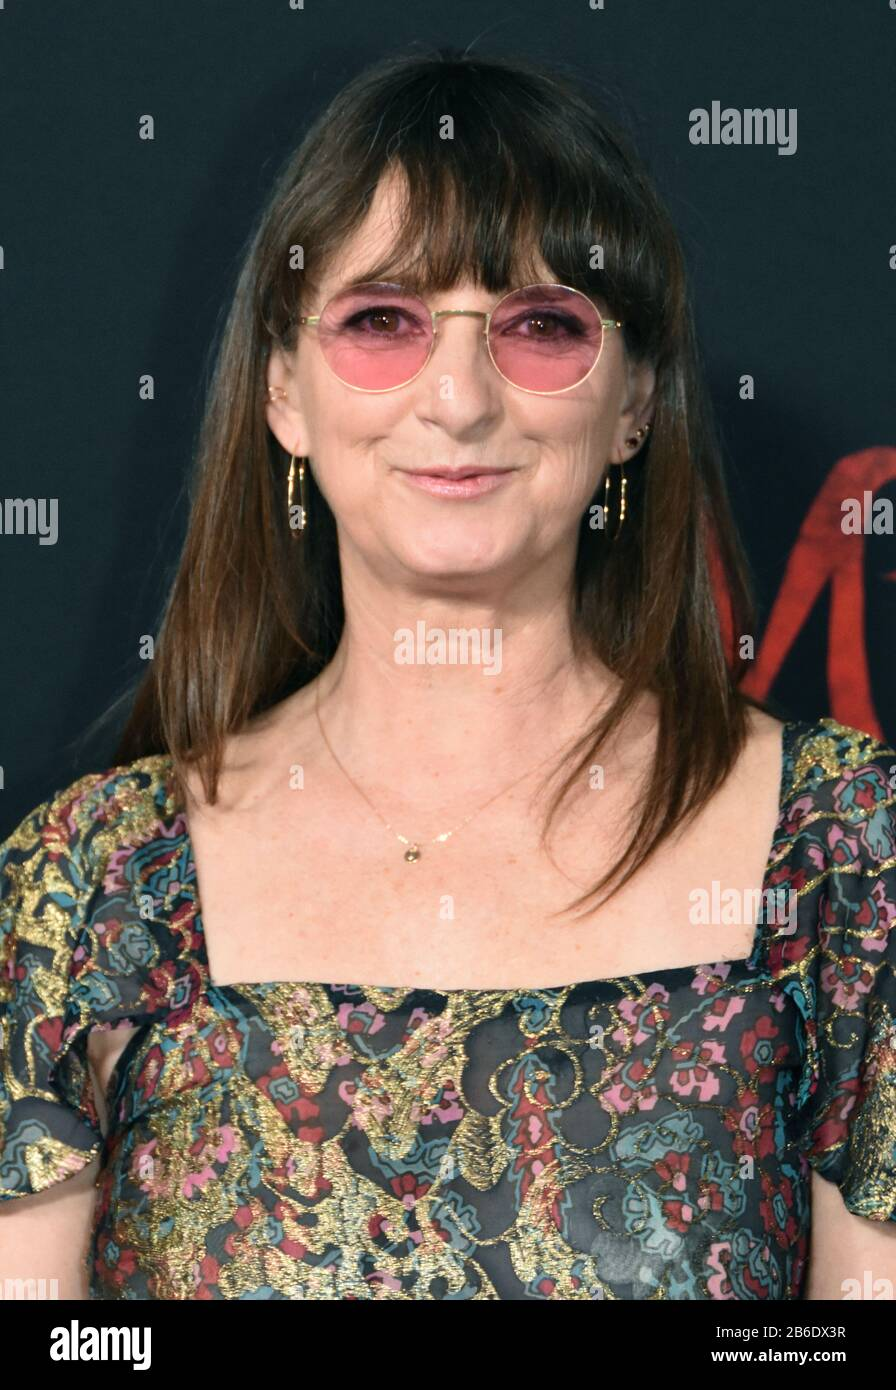 Hollywood California Usa 9th March 2020 Costume Designer Bina Daigeler Attends The World Premiere Of Disney S